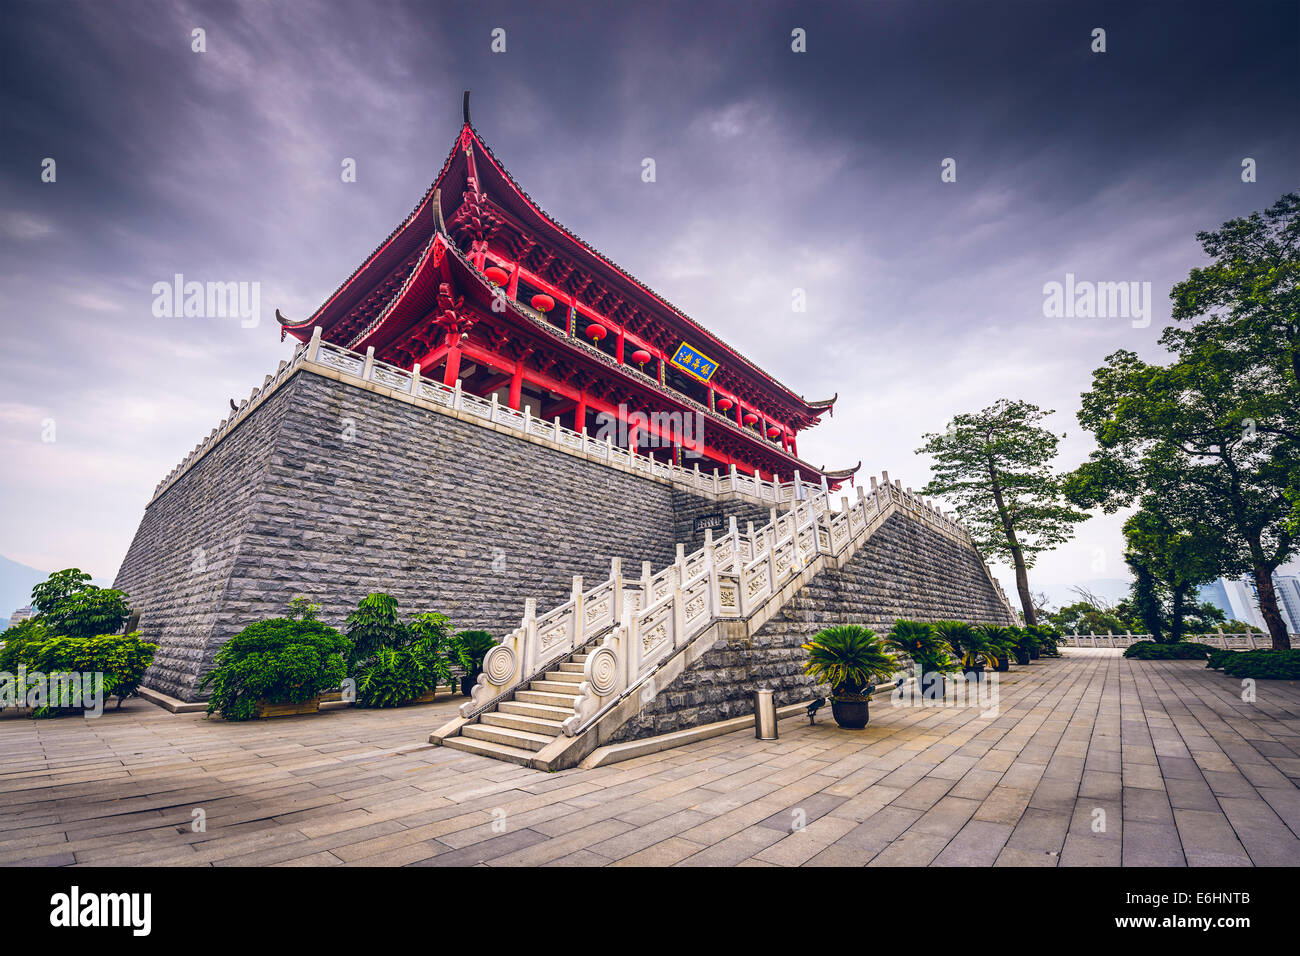 Fuzhou, China at the historic Zhenhai Tower. - Stock Image